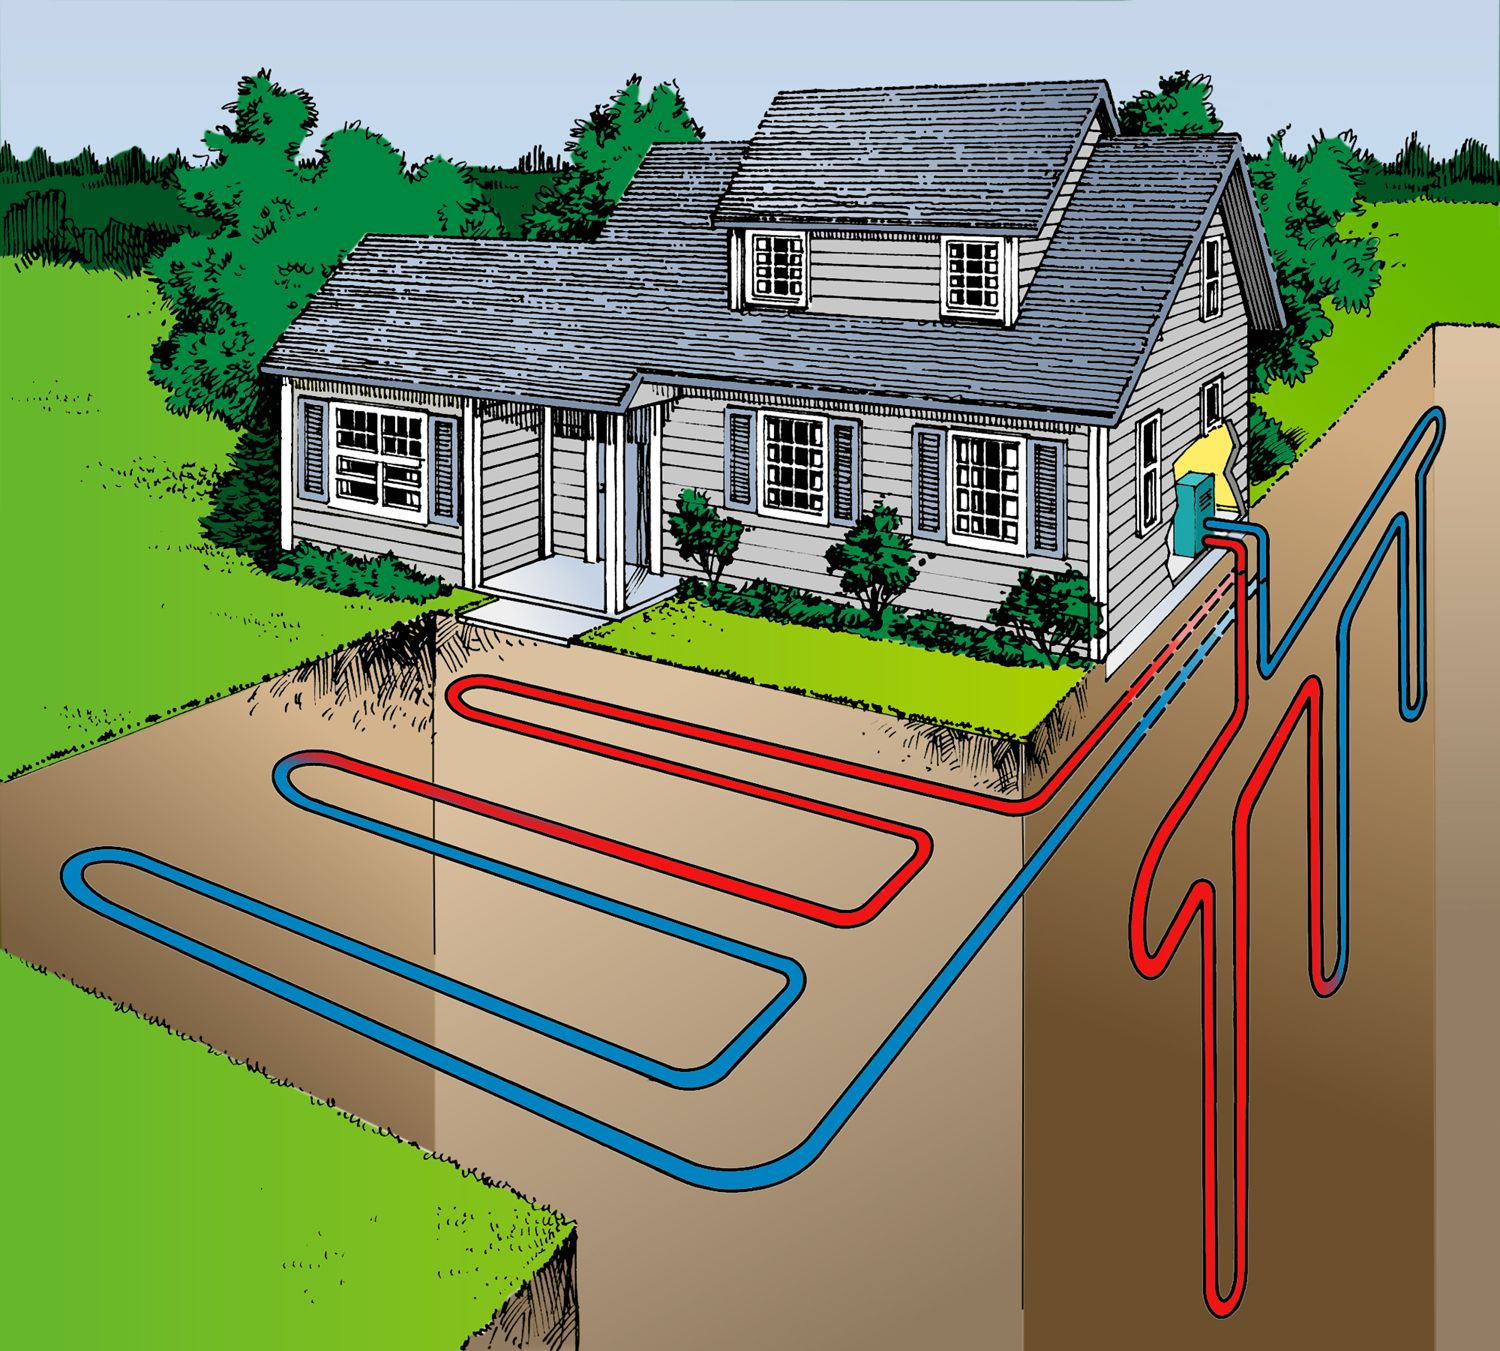 Geothermal Energy For Reducing Energy Bills Geothermal Heat Pumps Geothermal Heating Renewable Solar